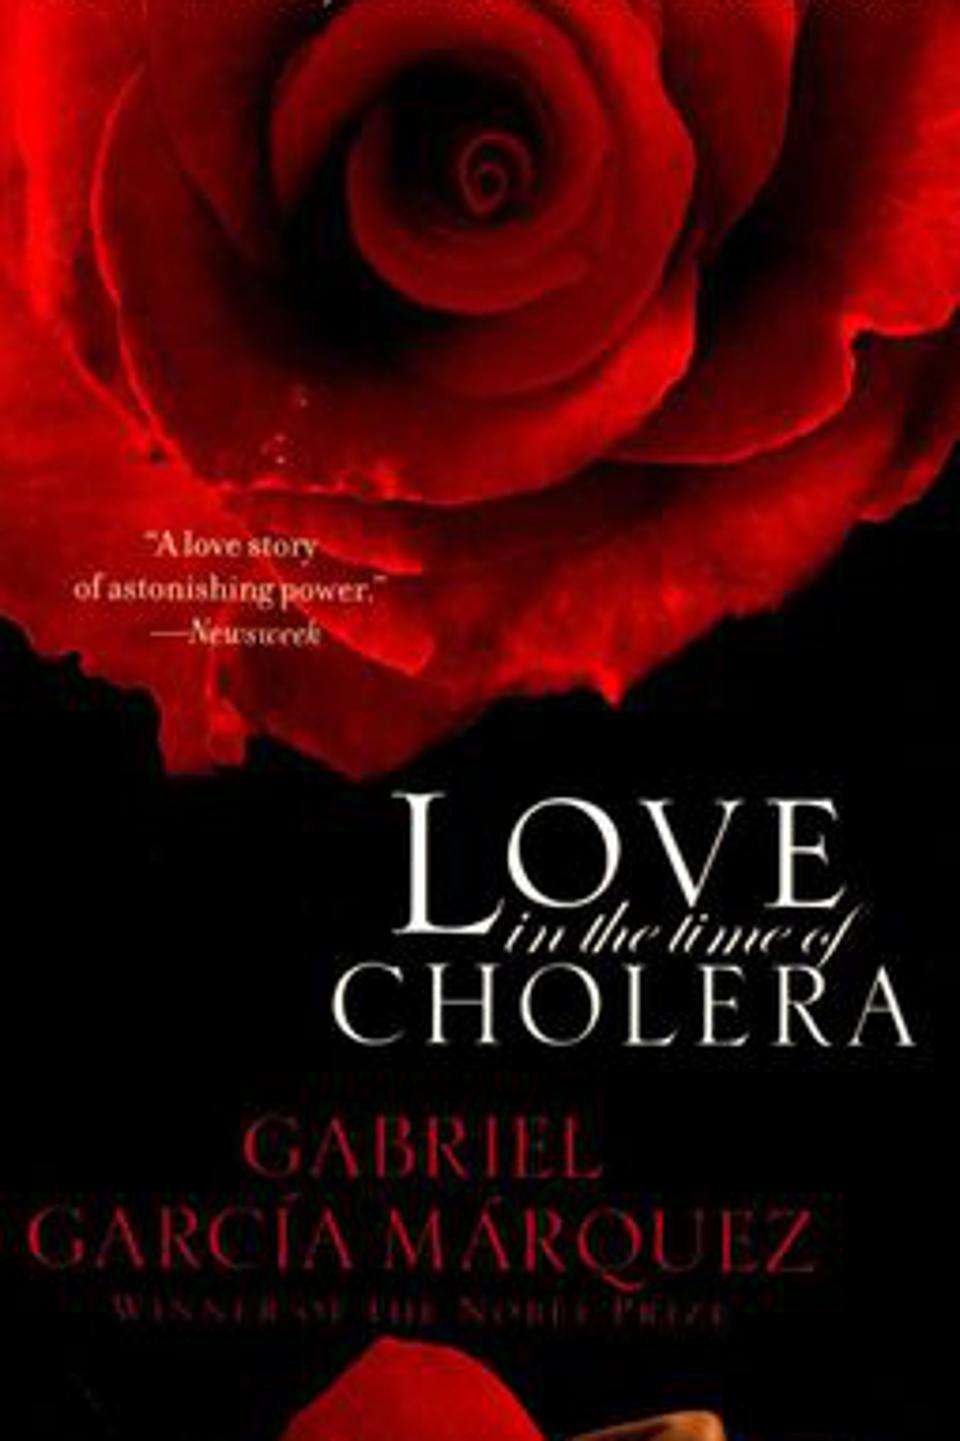 ″Love in the Time of Cholera″ by Gabriel Garcia Marquez